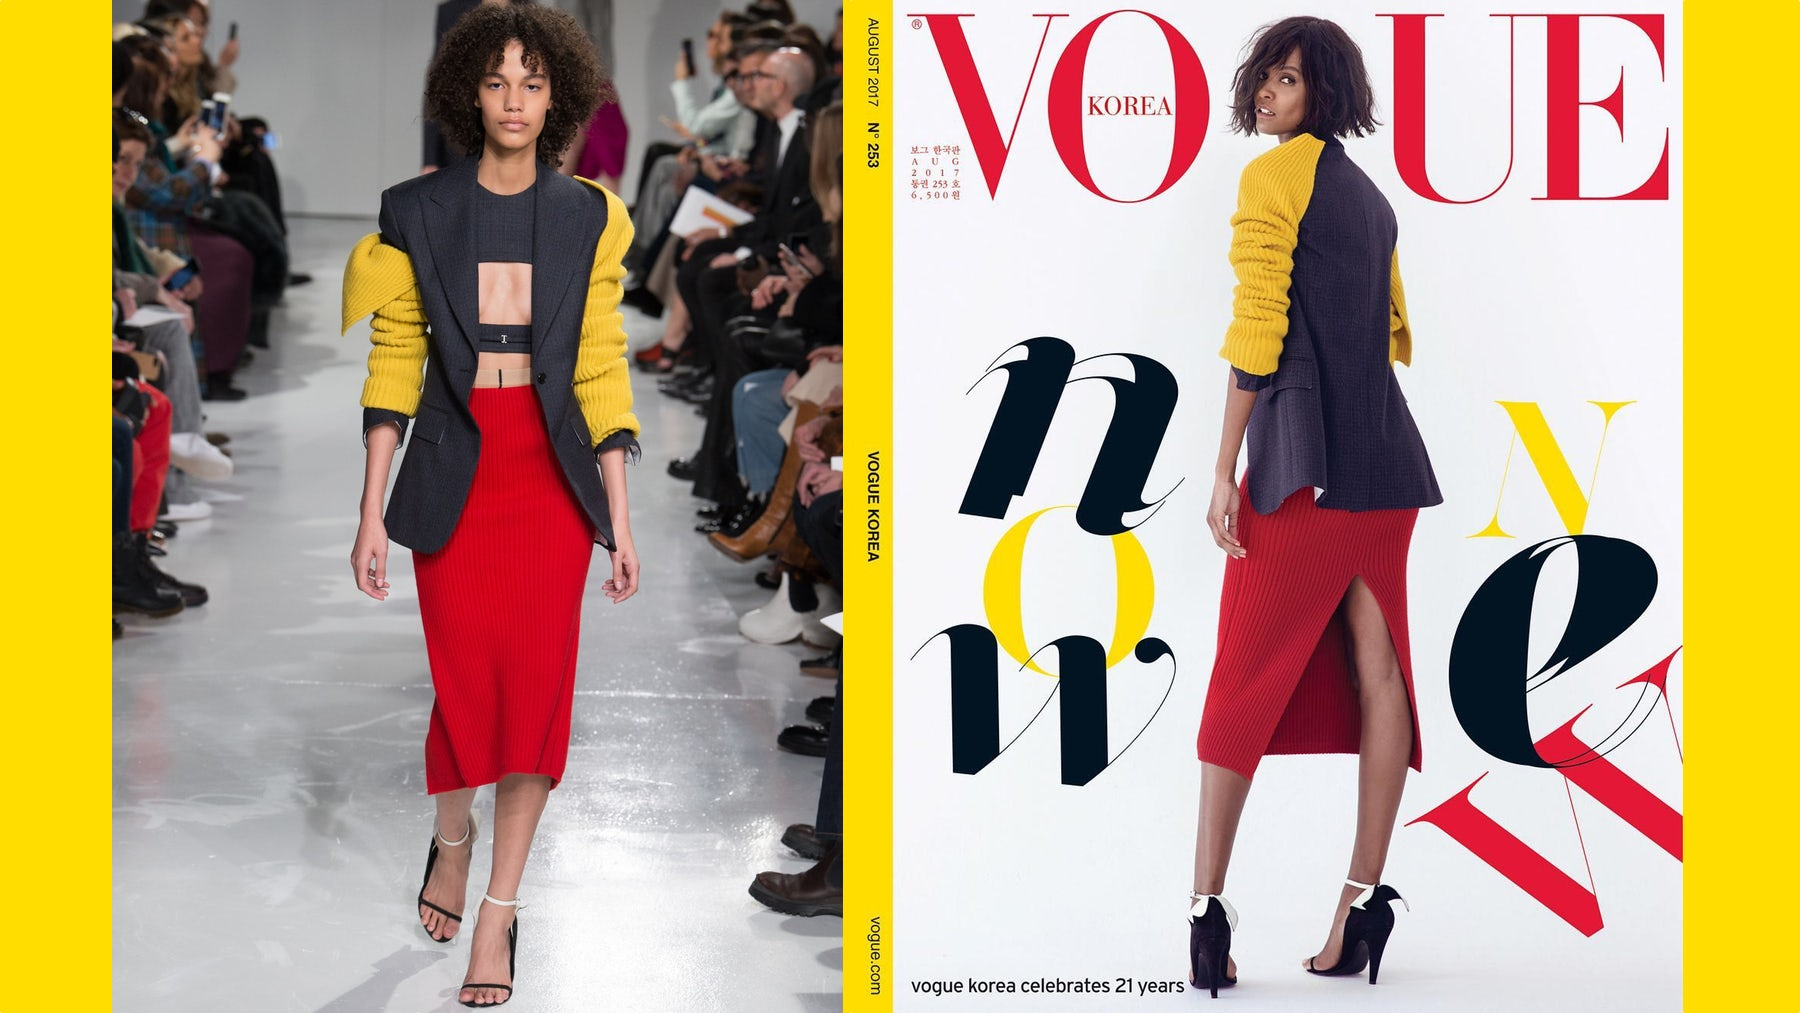 Left: A look from Calvin Klein's A/W'17 ready-to-wear collection. Right: A Vogue Korea editorial featuring the full look. Source: Indigital.tv